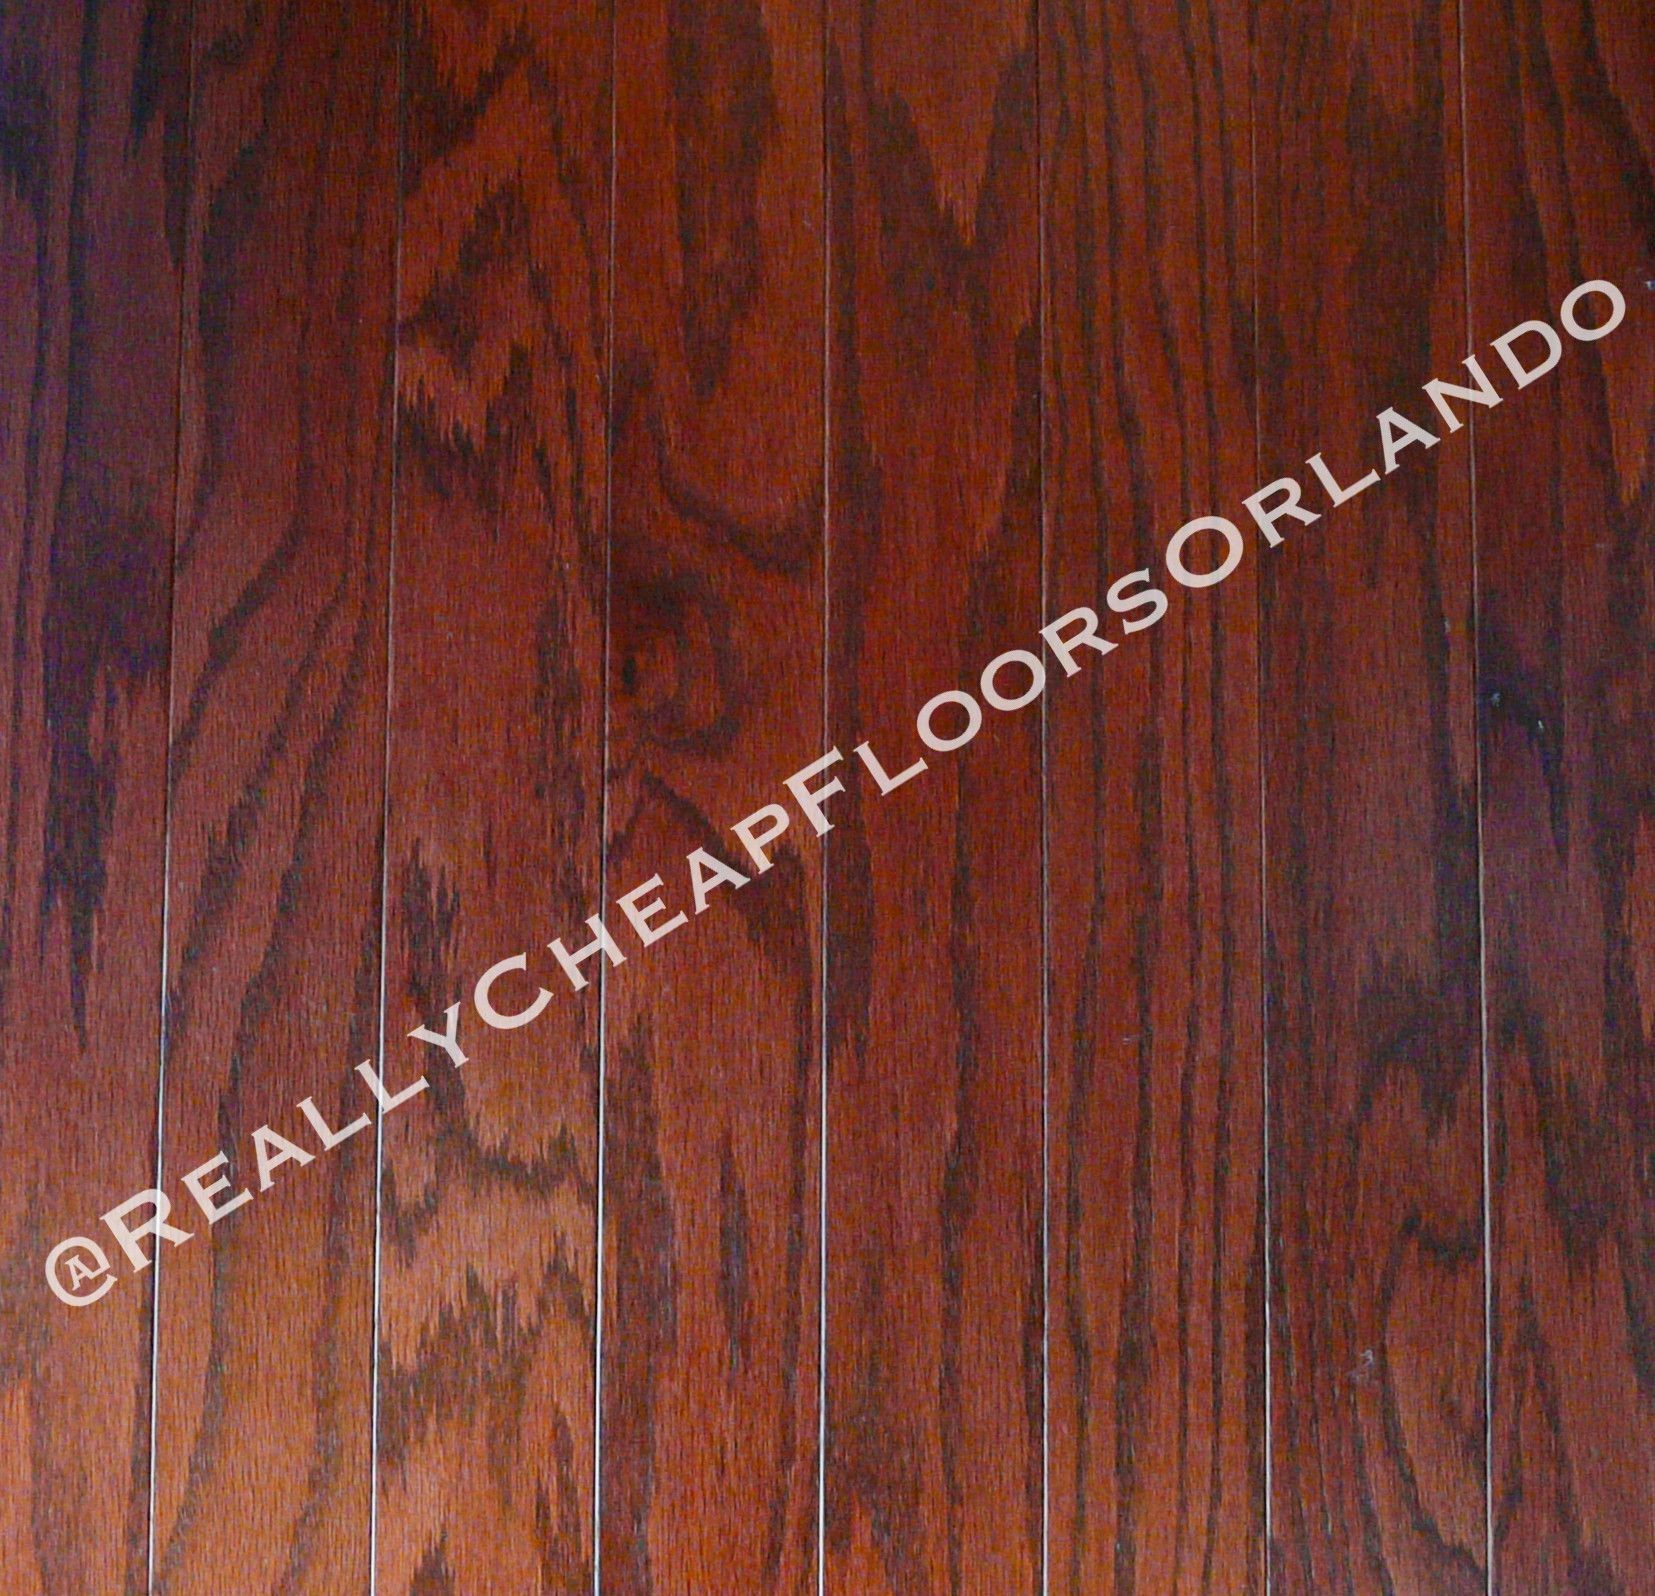 ark hardwood flooring of 19 new cheapest hardwood flooring photograph dizpos com pertaining to cheapest hardwood flooring inspirational american made hardwood flooring at the cheapest prices located at photograph of